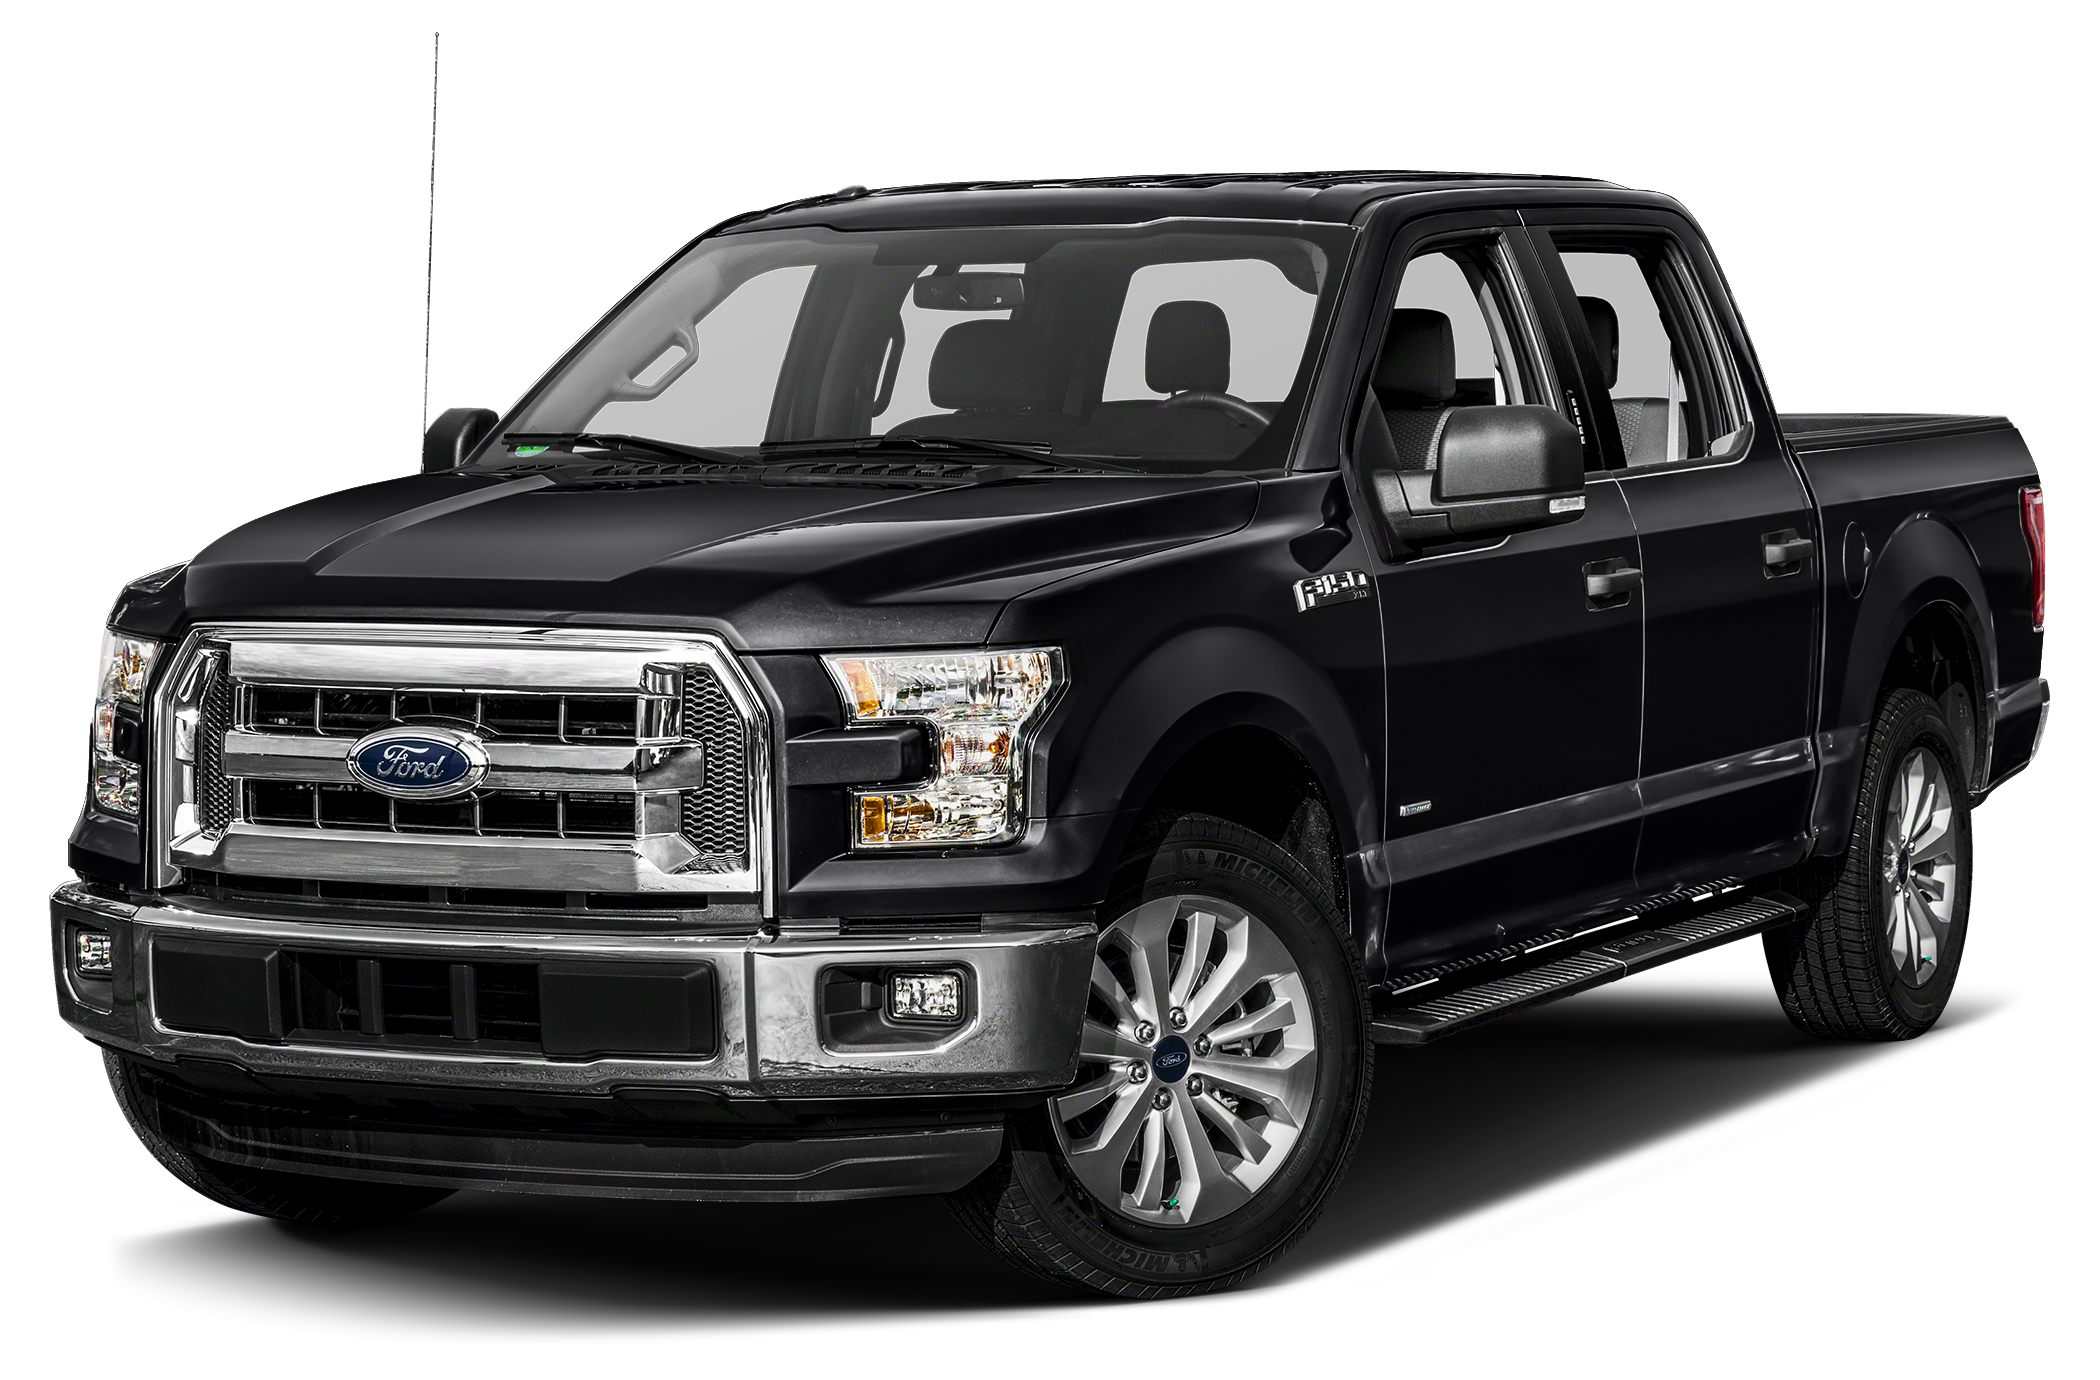 2017 Ford F-150 XLT 2017 Ford F-150 XLT 27L V6 EcoBoost ABS brakes Compass Electronic Stabilit